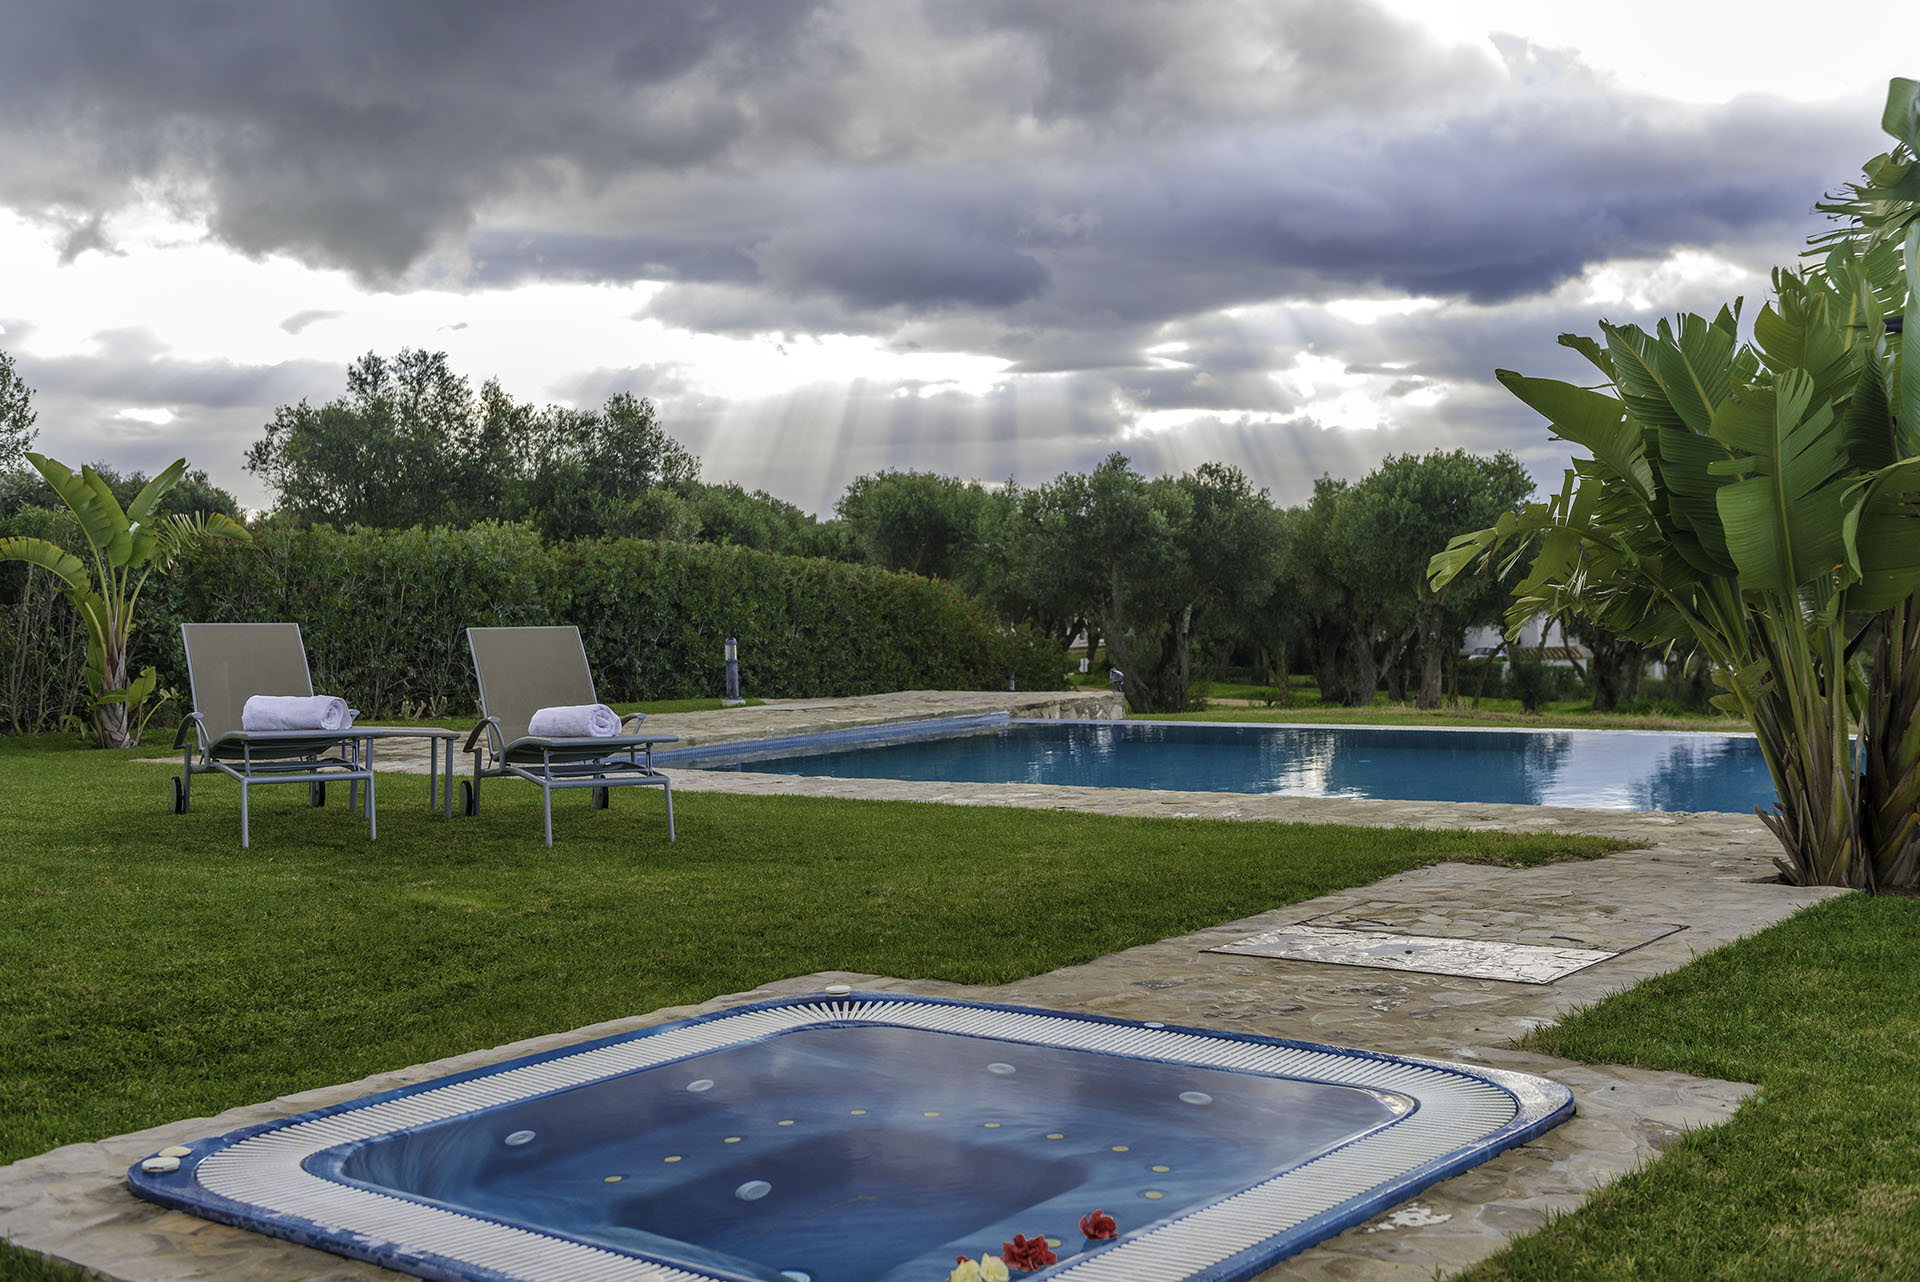 Villa Violeta whirpool and pool